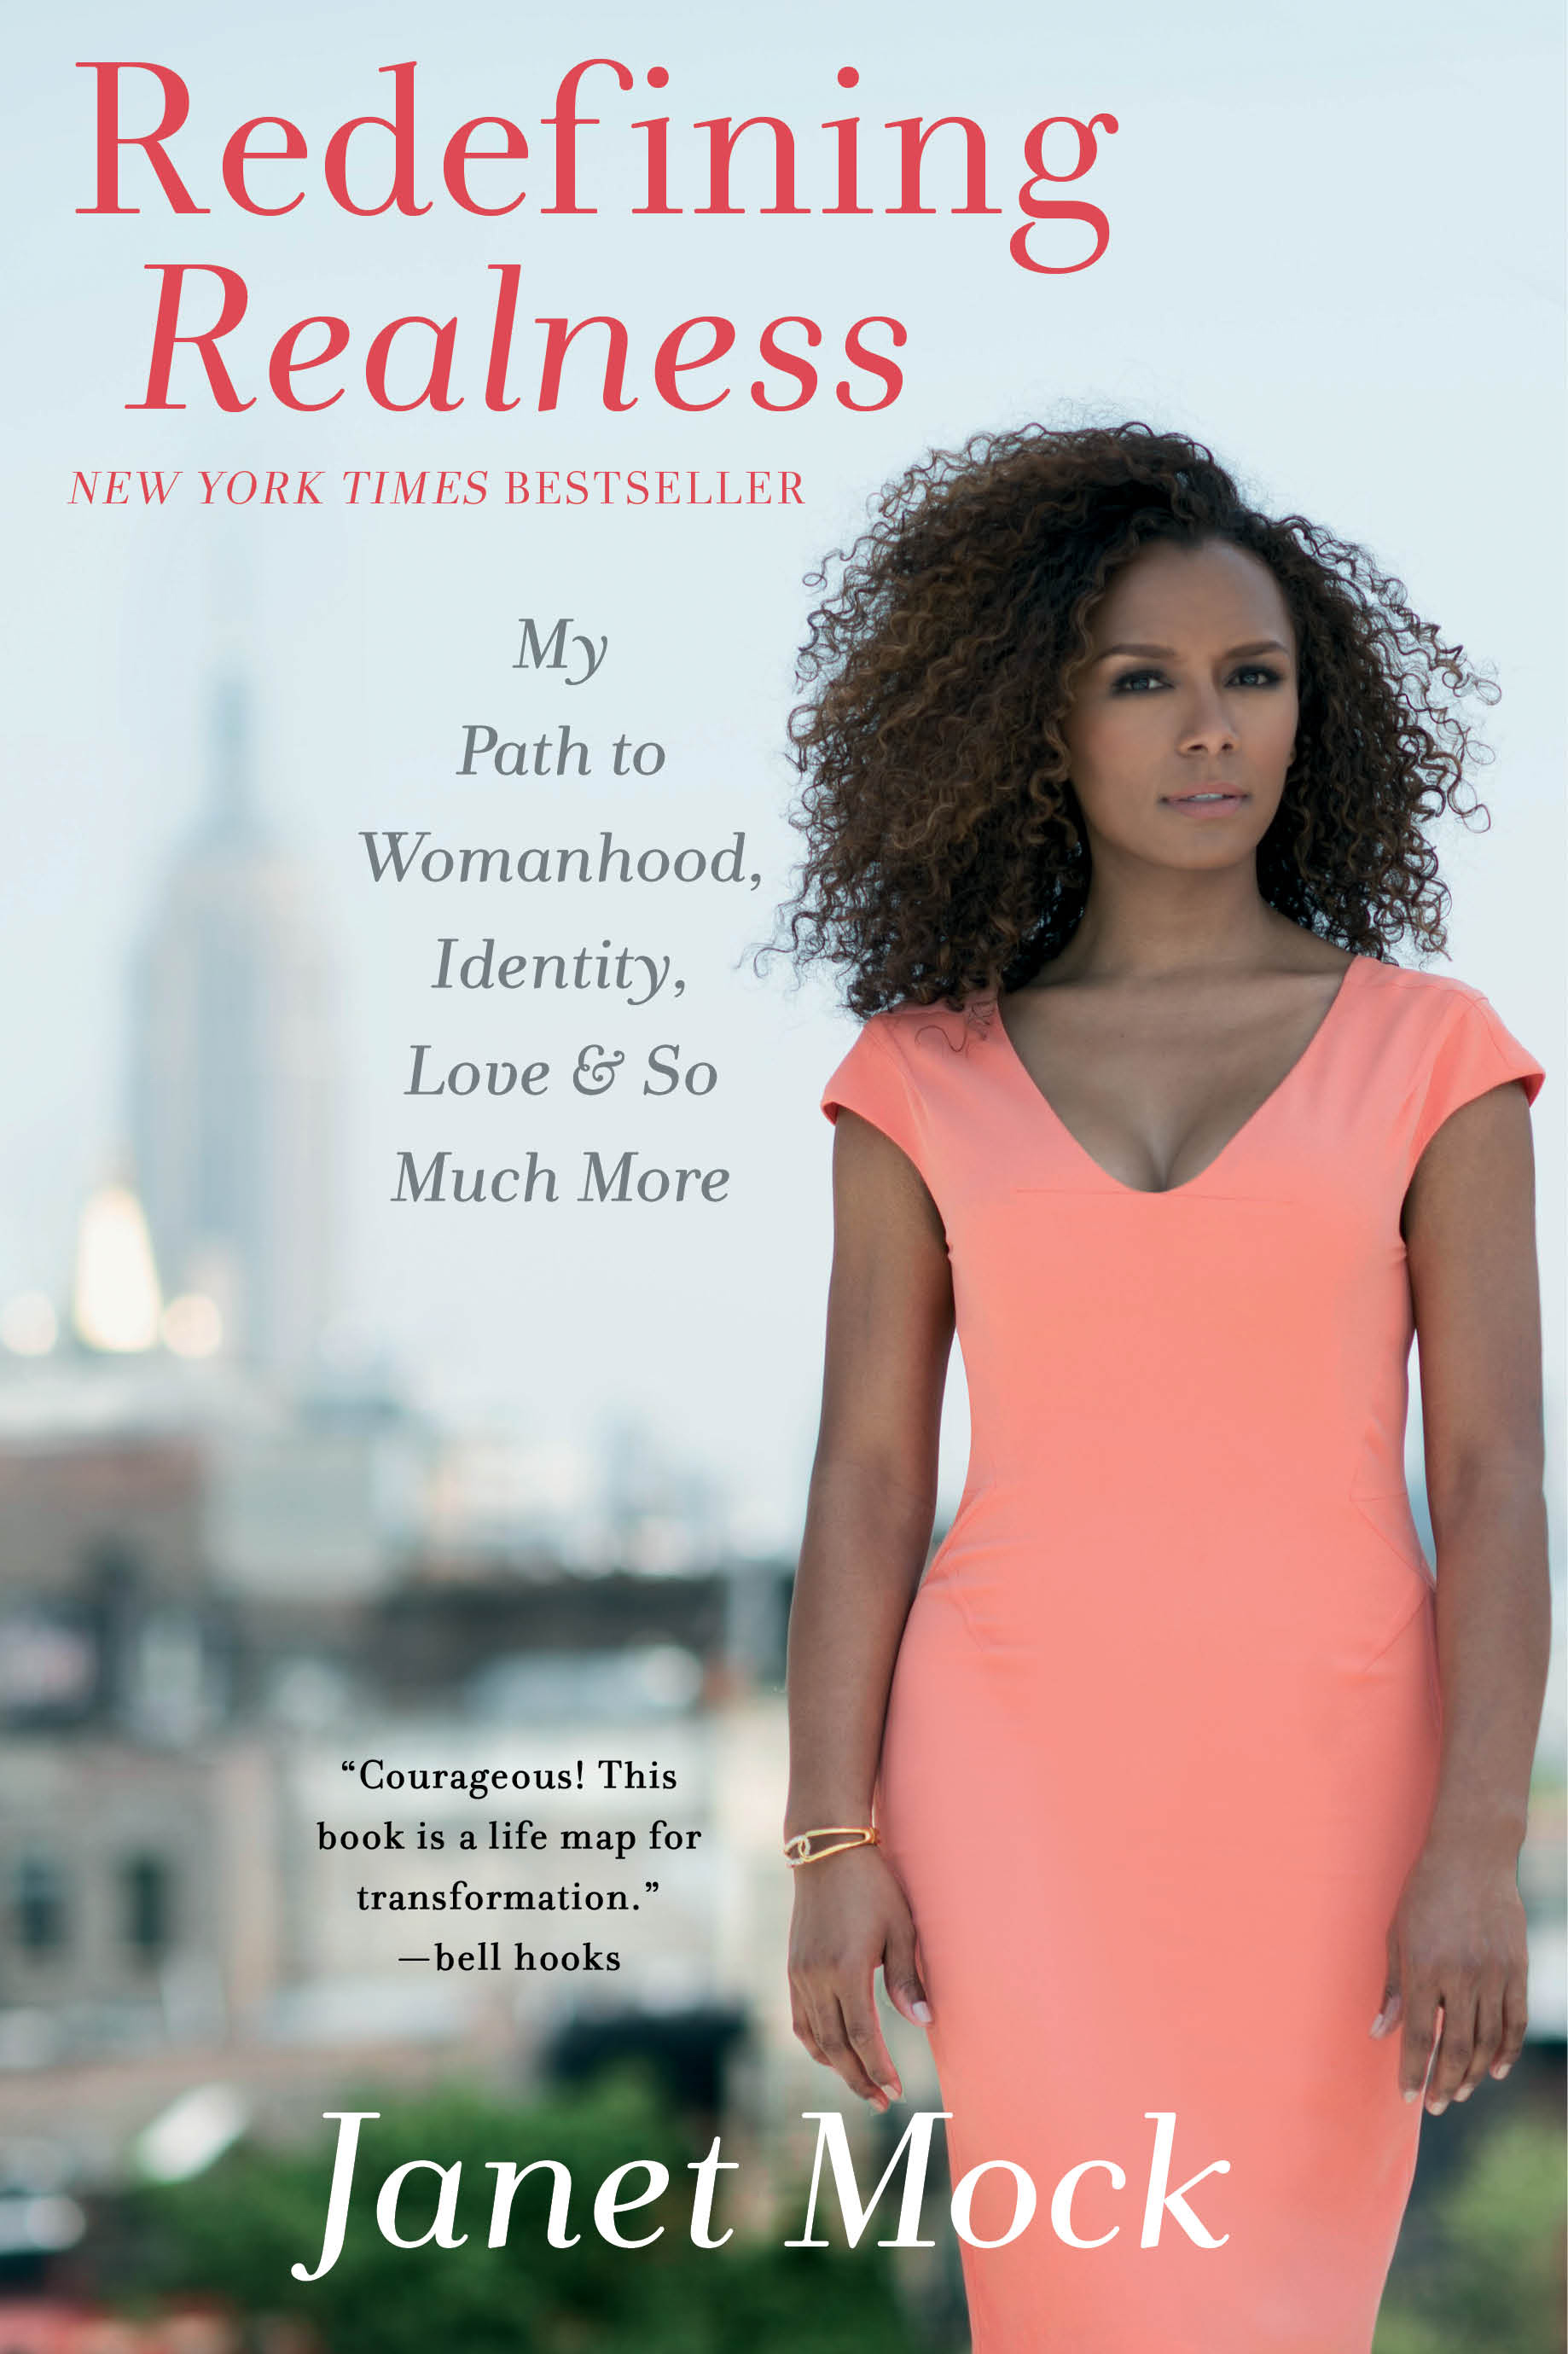 Janet Mock 'Redefining Realness' Book Cover